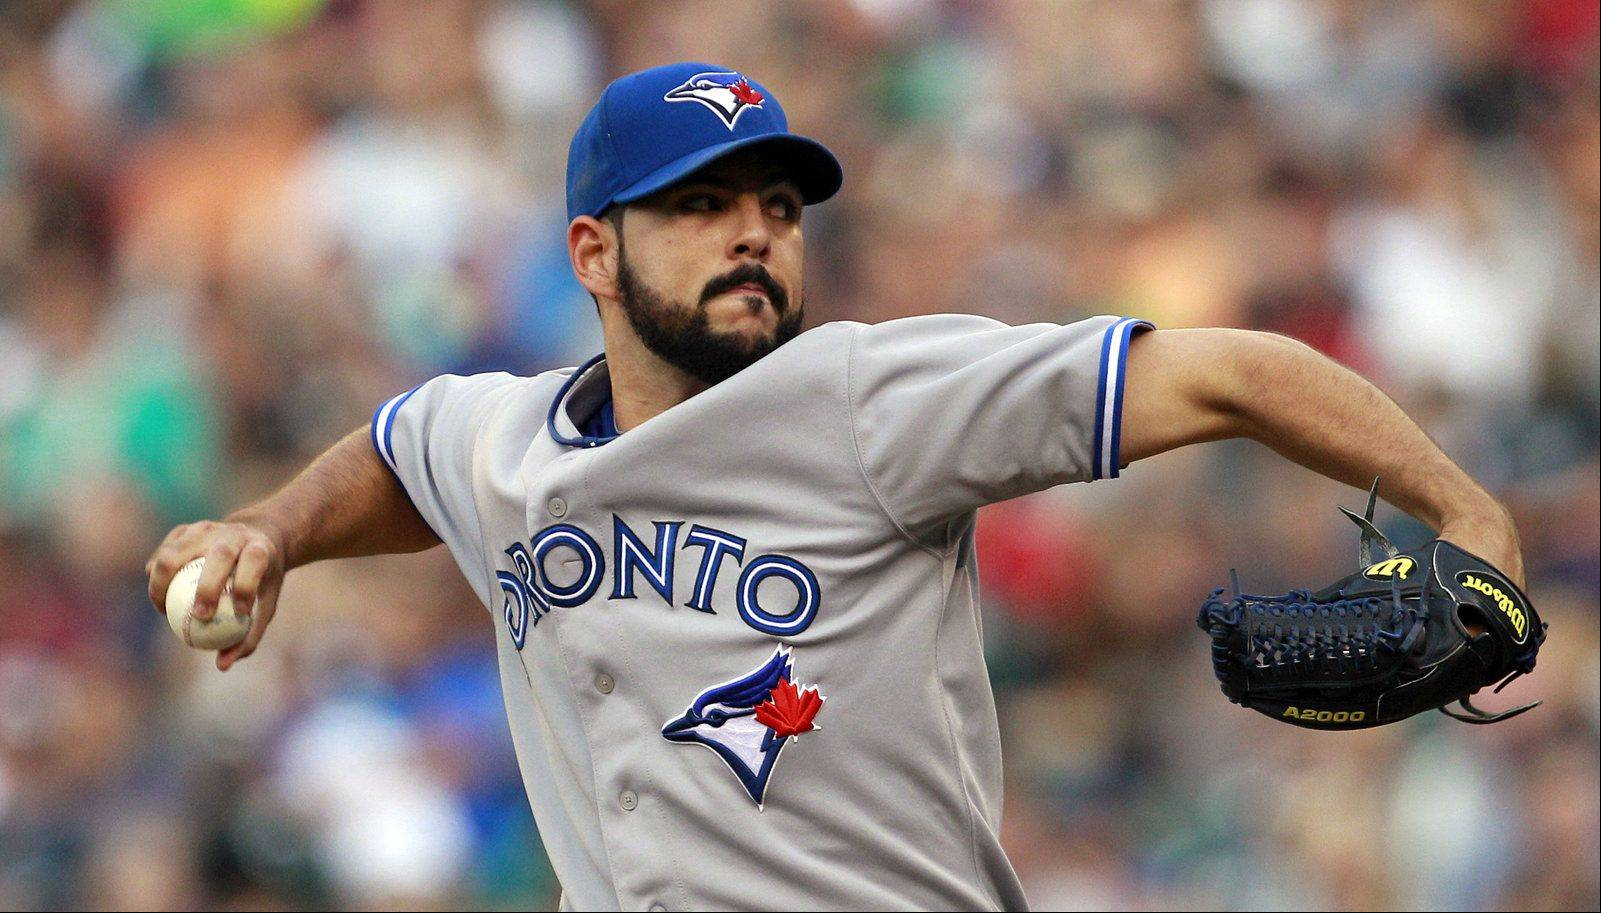 Free agent pitcher Carlos Villanueva, according to several reports, has signed a $10 million, two-year deal with the Cubs, pending a physical. Villanueva was 7-7 as a starter last season, and he also has been used in the bullpen.